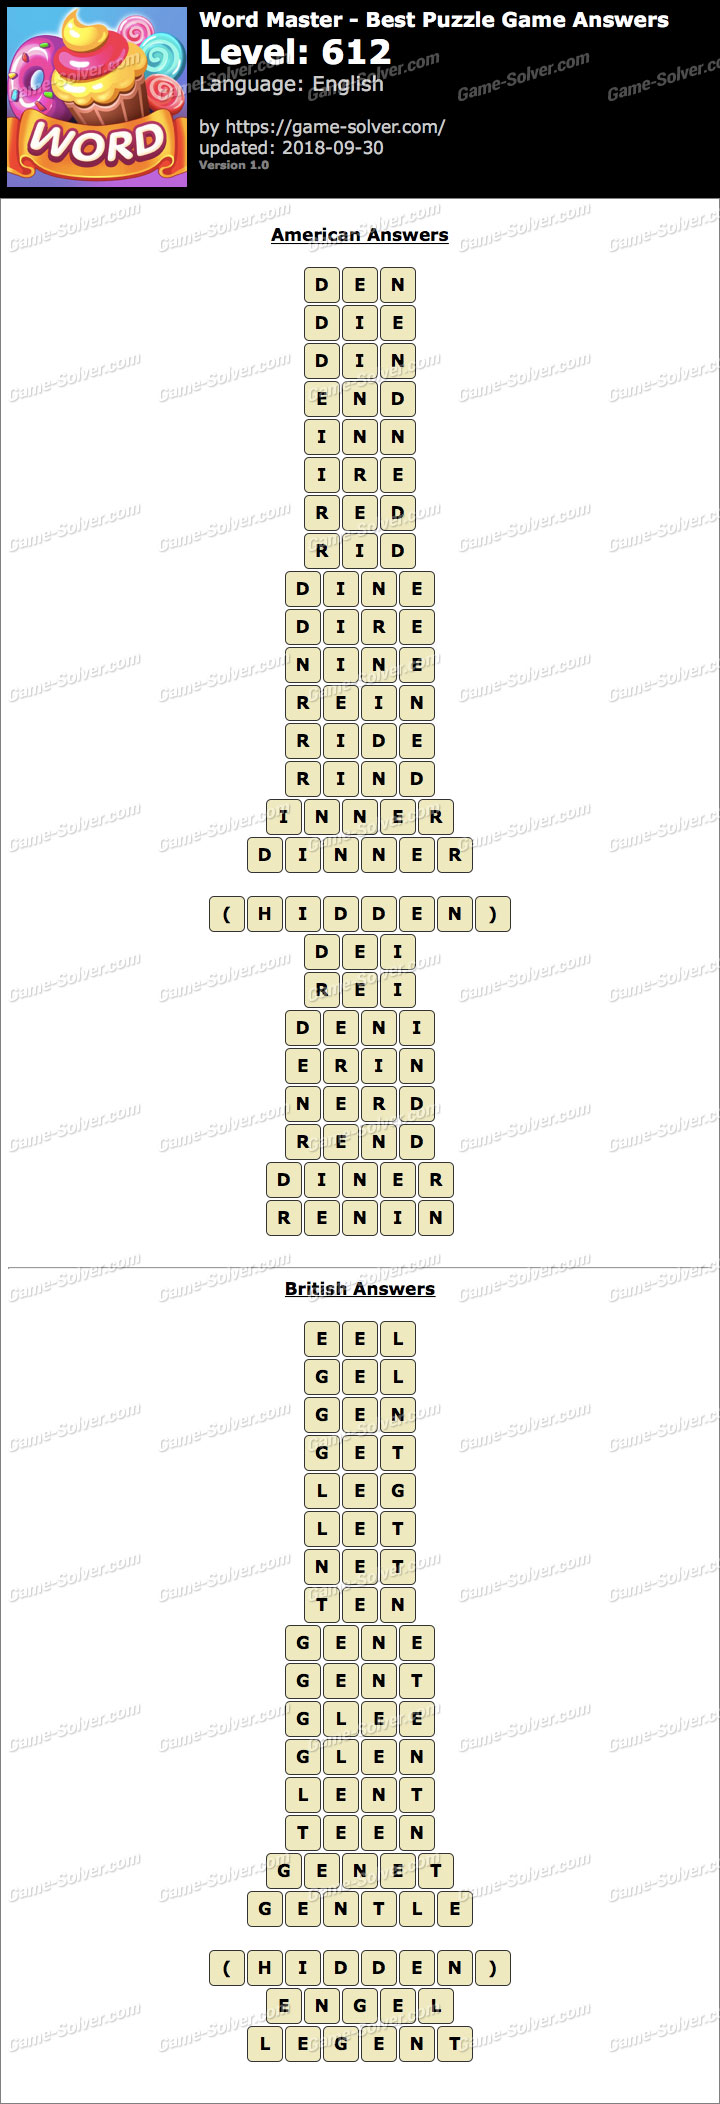 Word Master-Best Puzzle Game Level 612 Answers